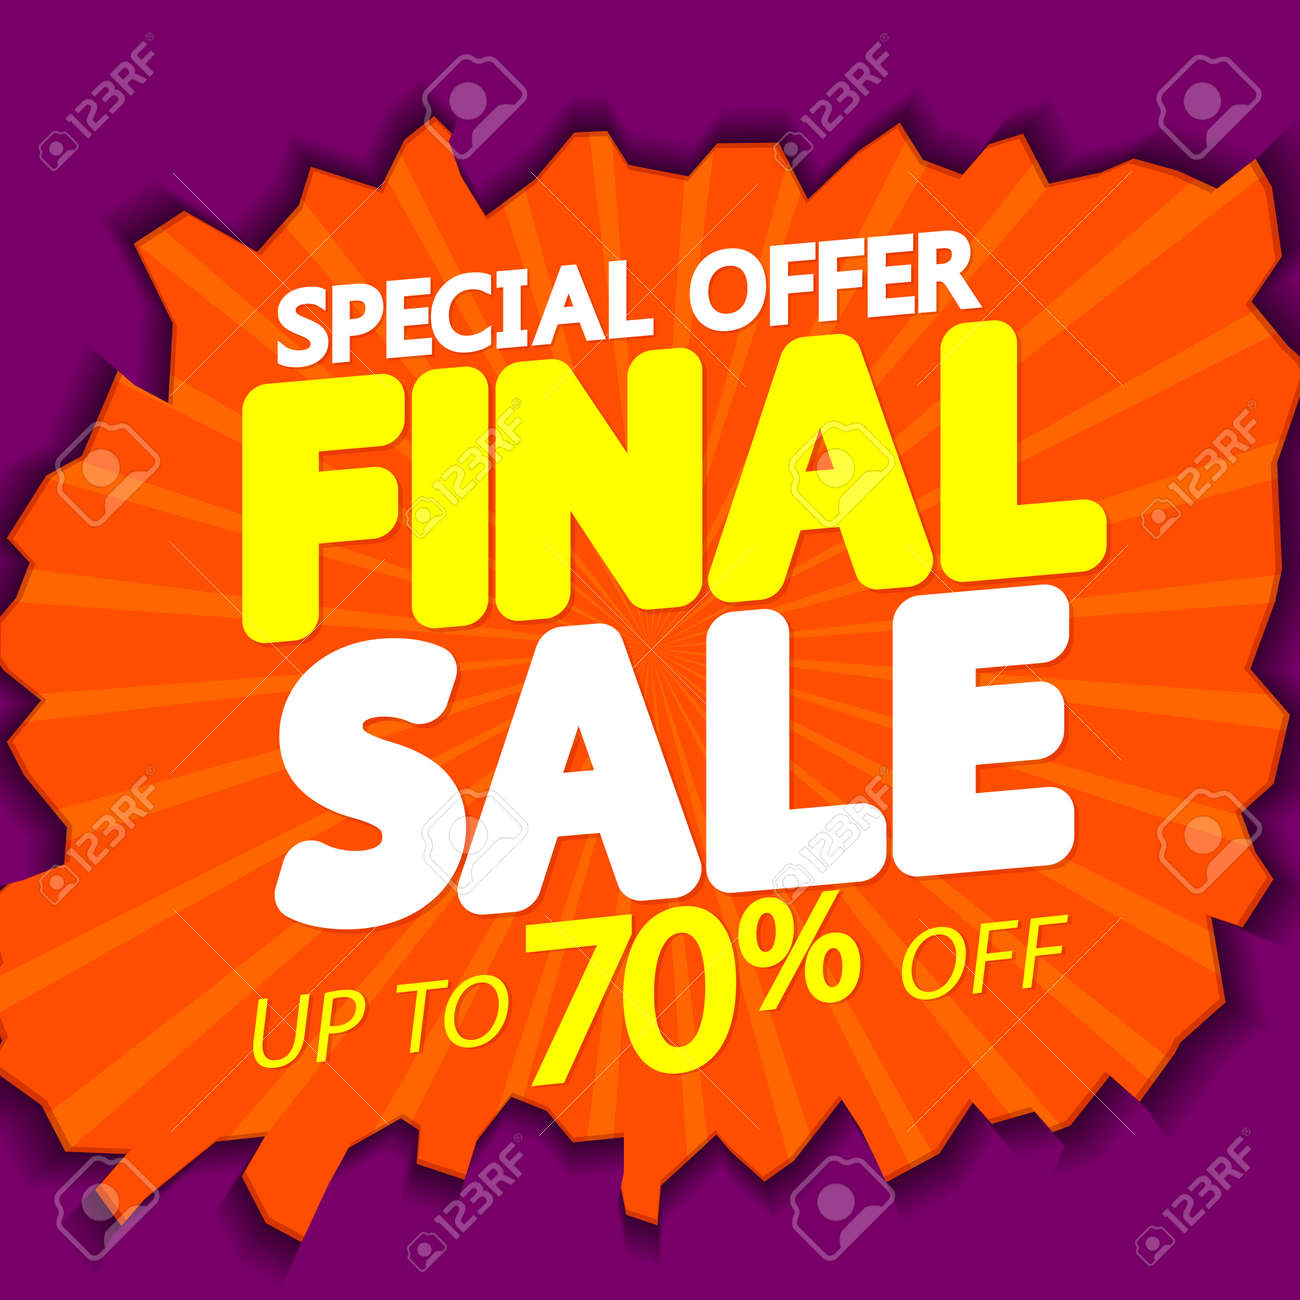 Final Sale up to 70% off, poster design template, special offer, final season discount banner, vector illustration - 166230663